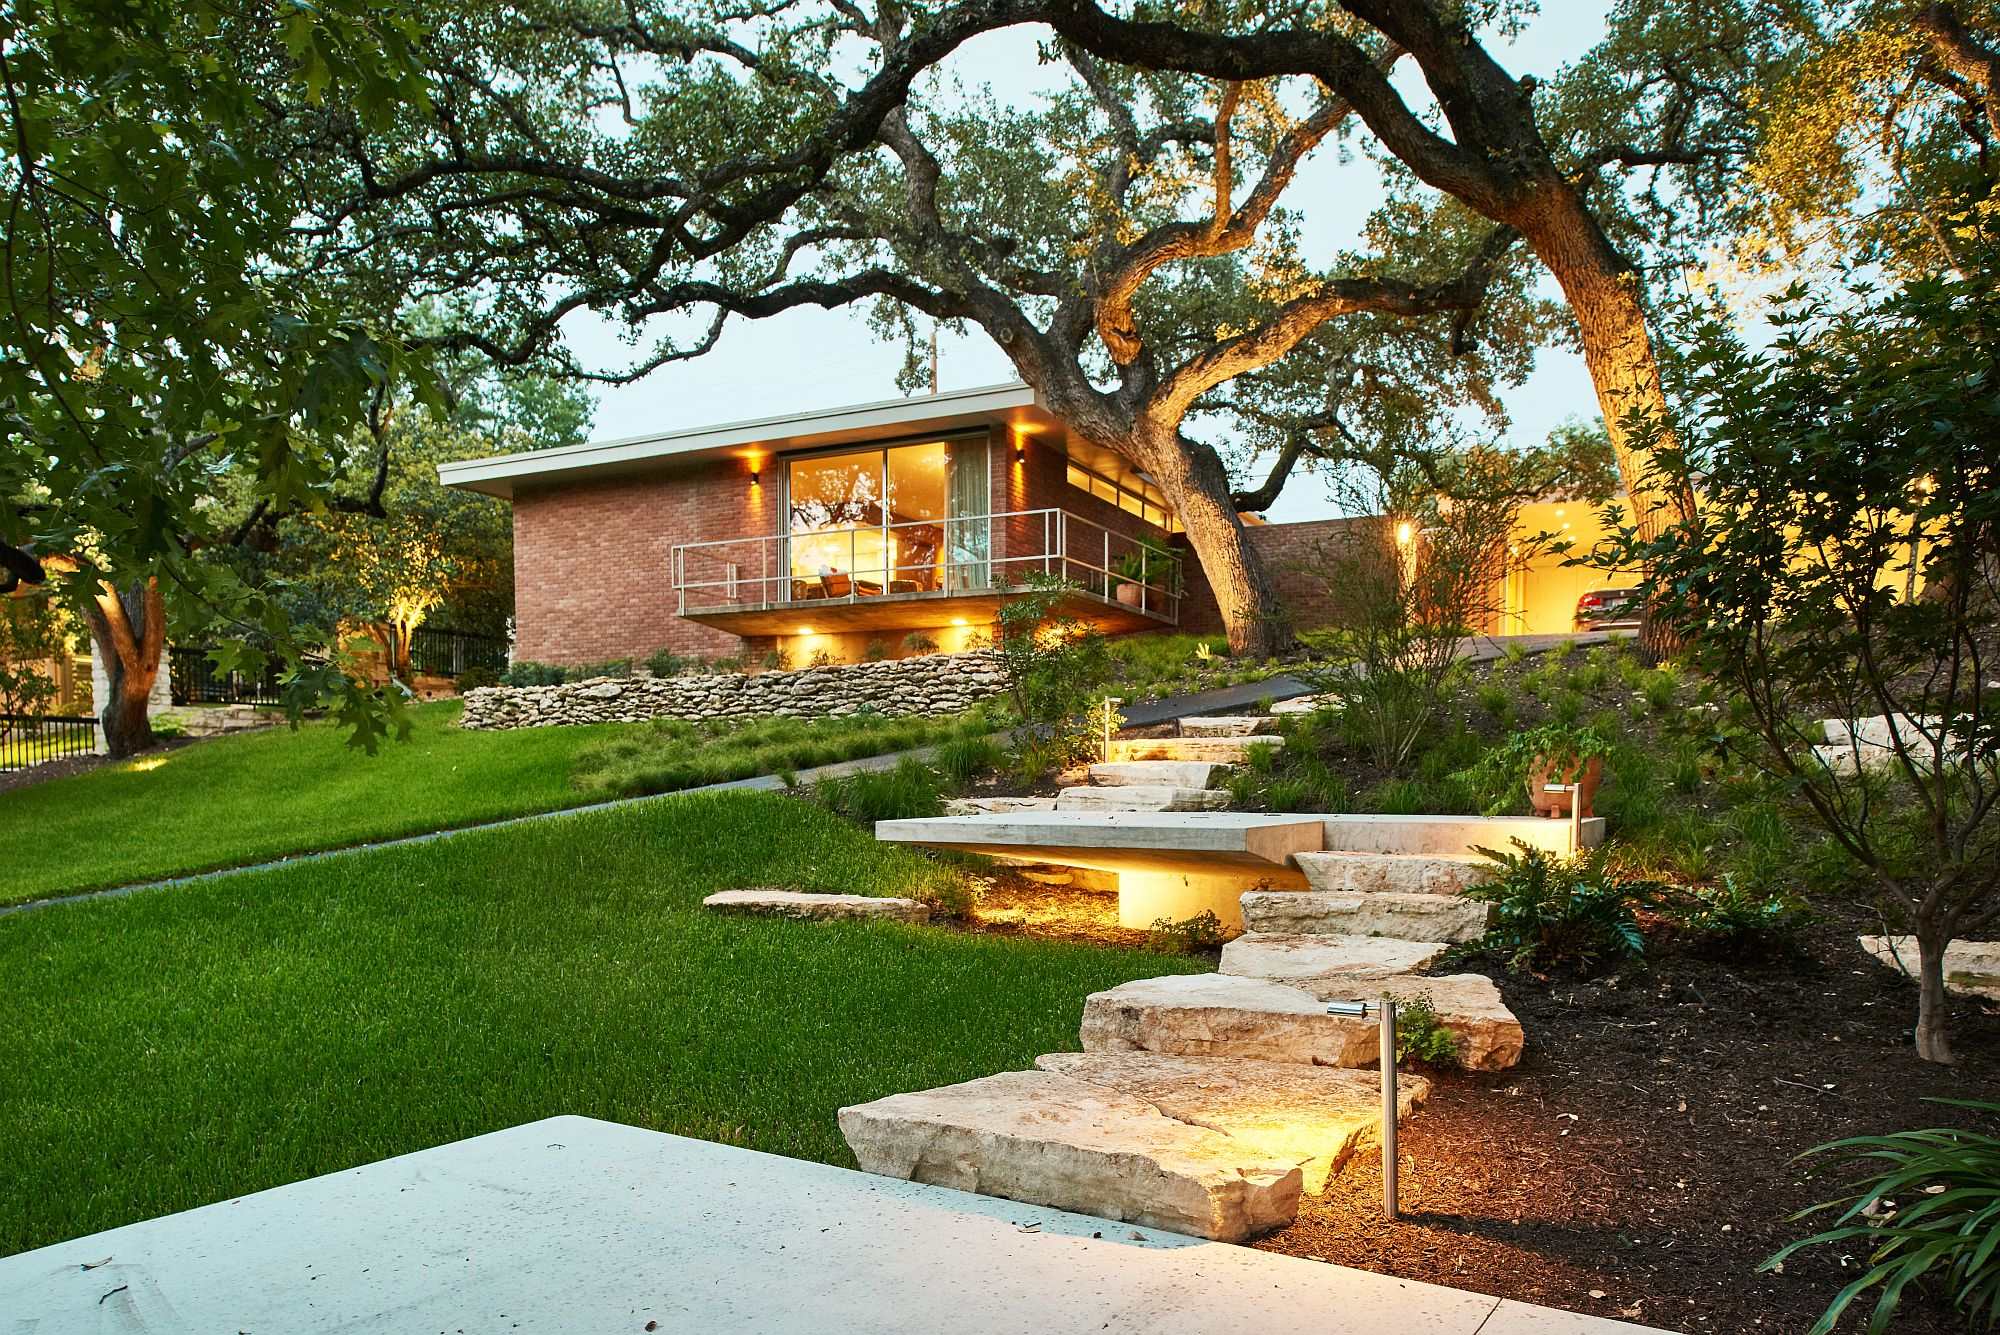 Fabulous Texas home sits atop a sloping hillside and offers fabulous views of the neighborhood